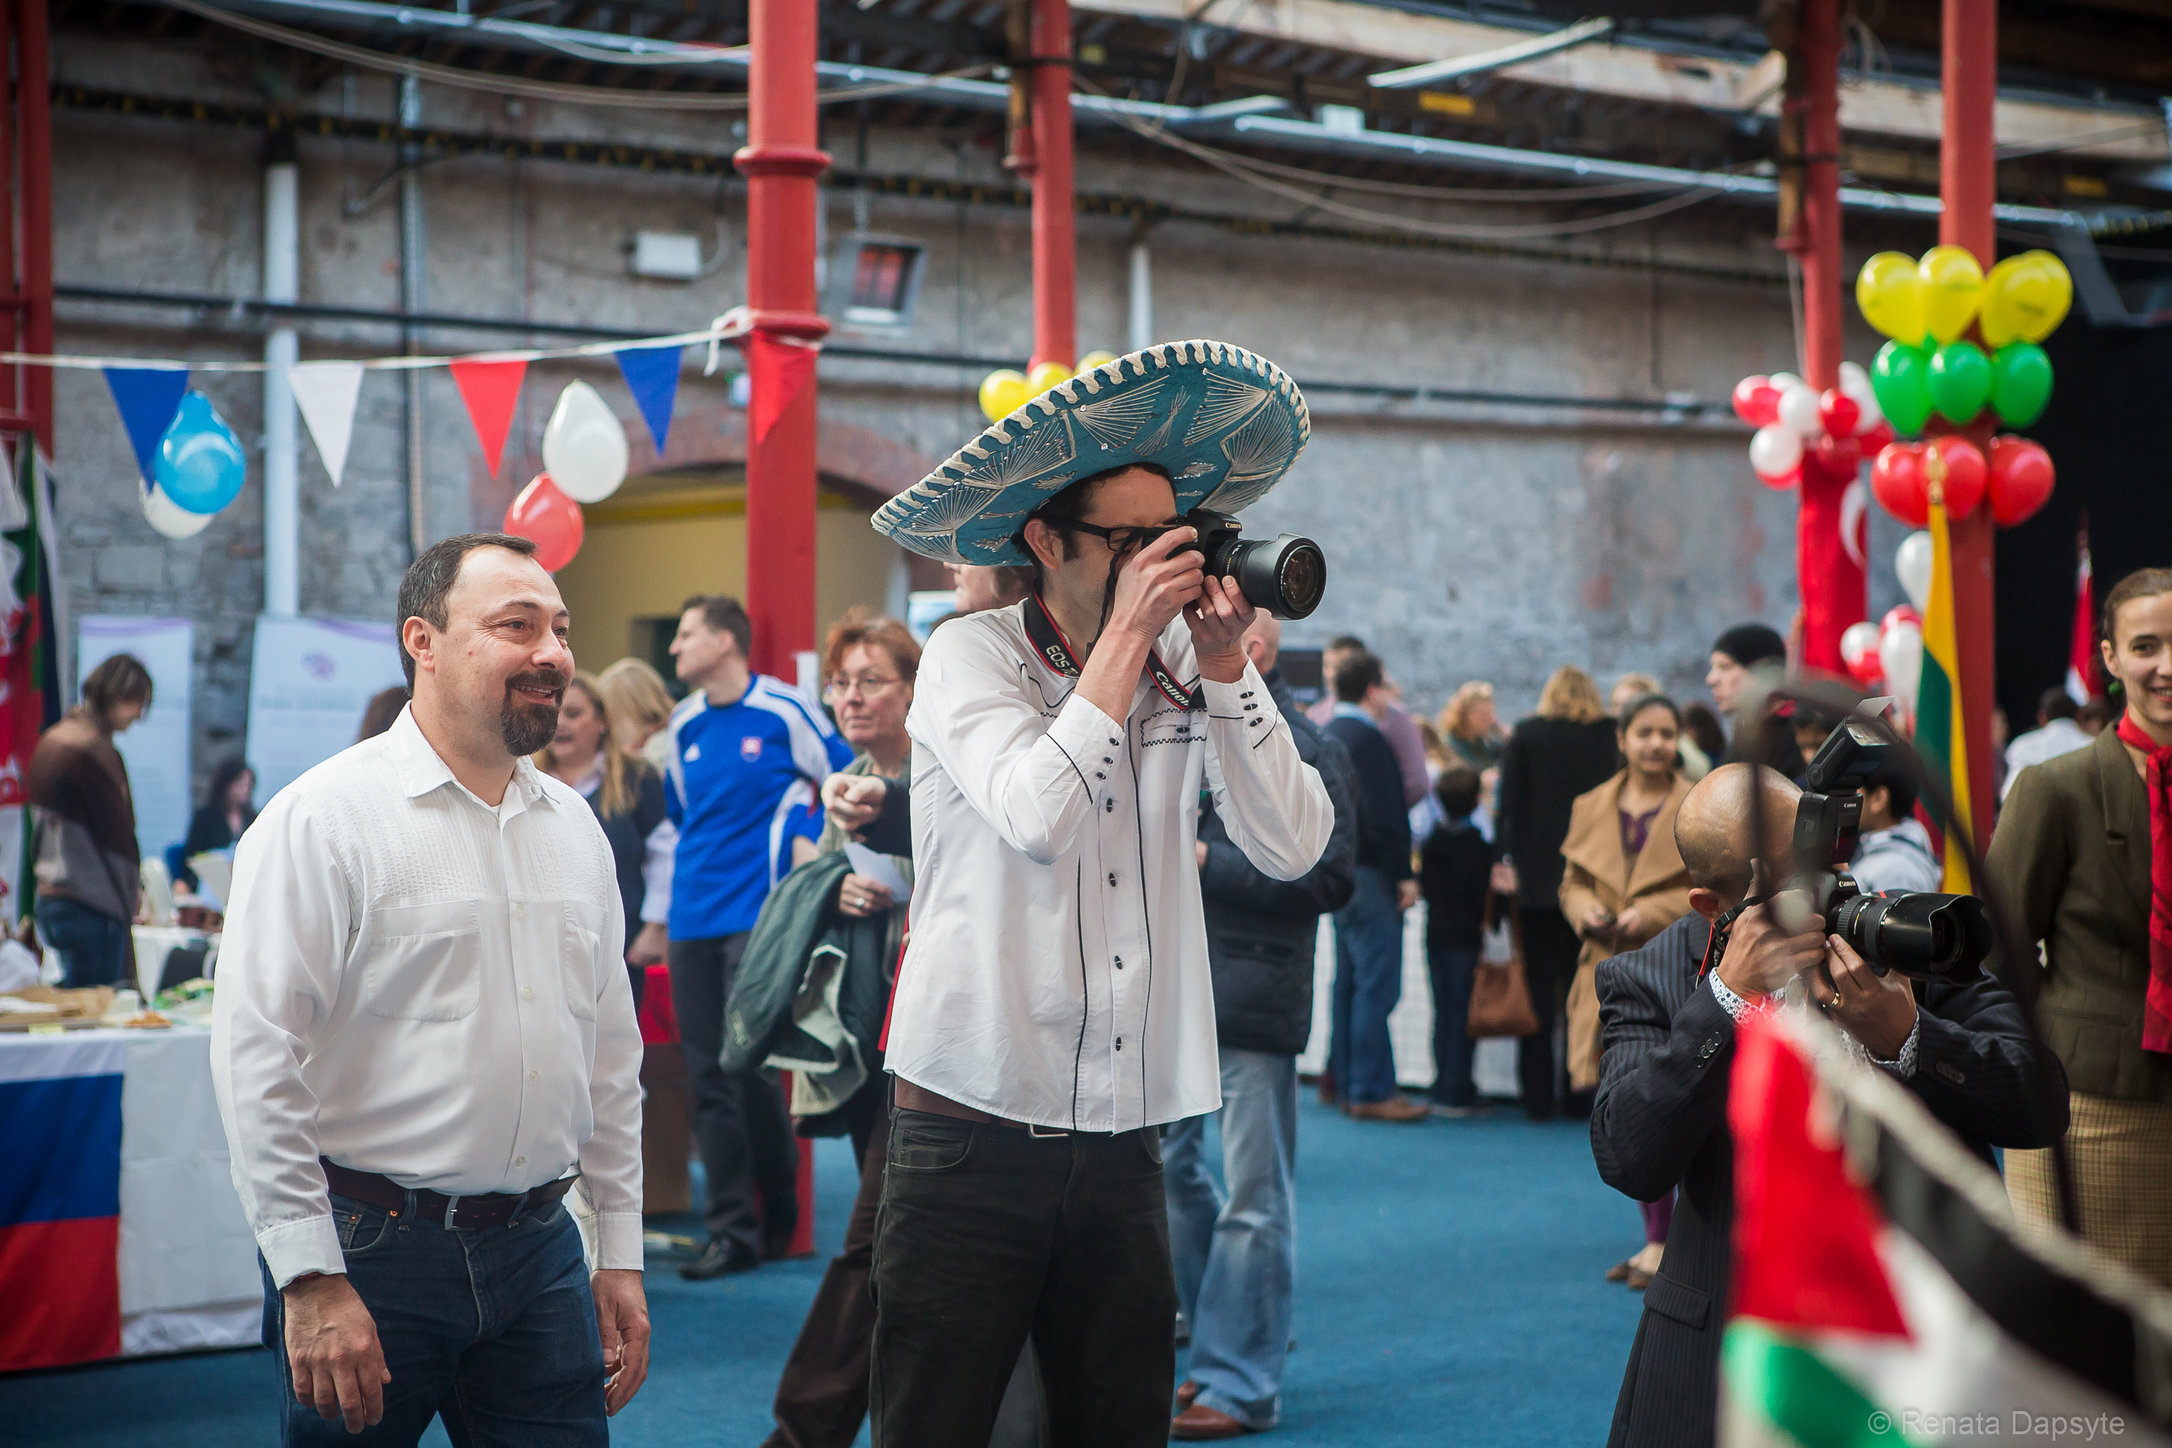 059_International Charity Bazaar Dublin 2013.JPG